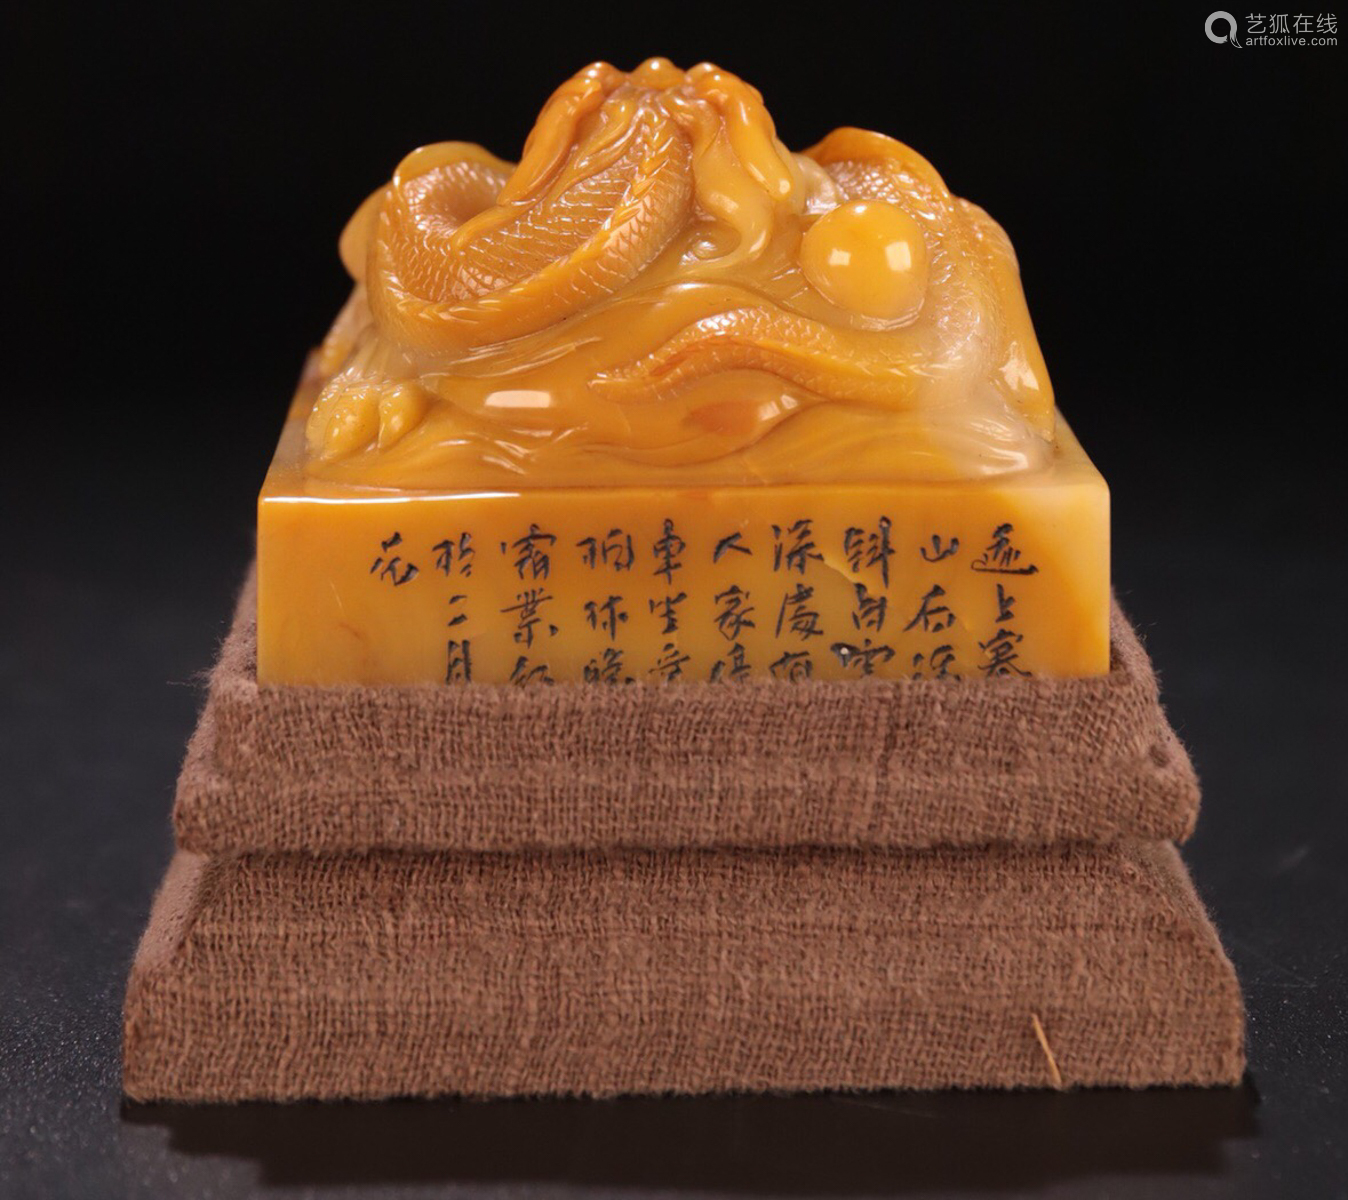 A TIANHUANG STONE CARVED DRAGON SHAPED SEAL